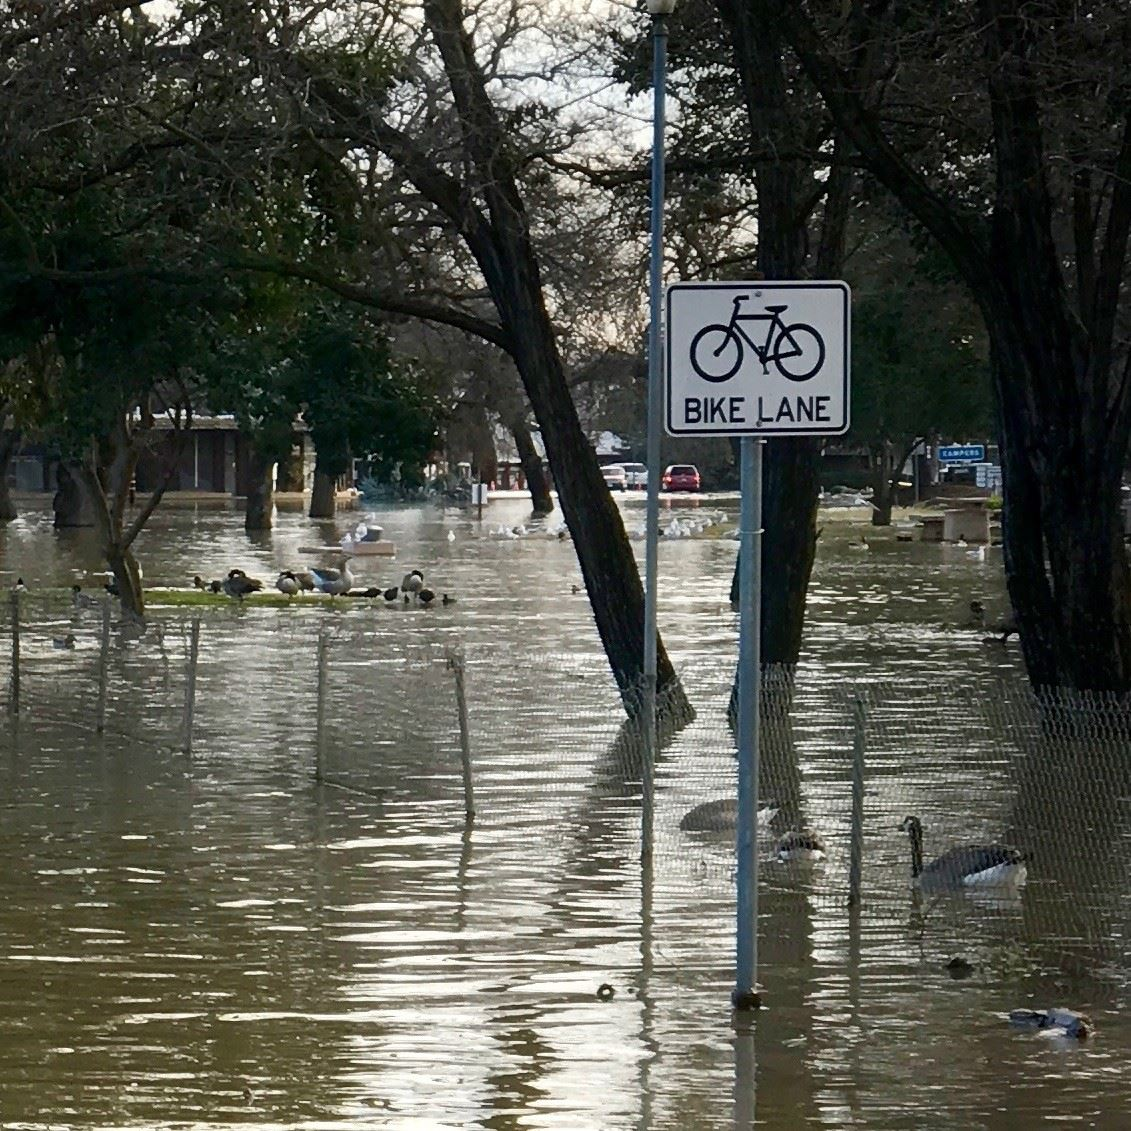 Bike lane sign standing in several feet of water.